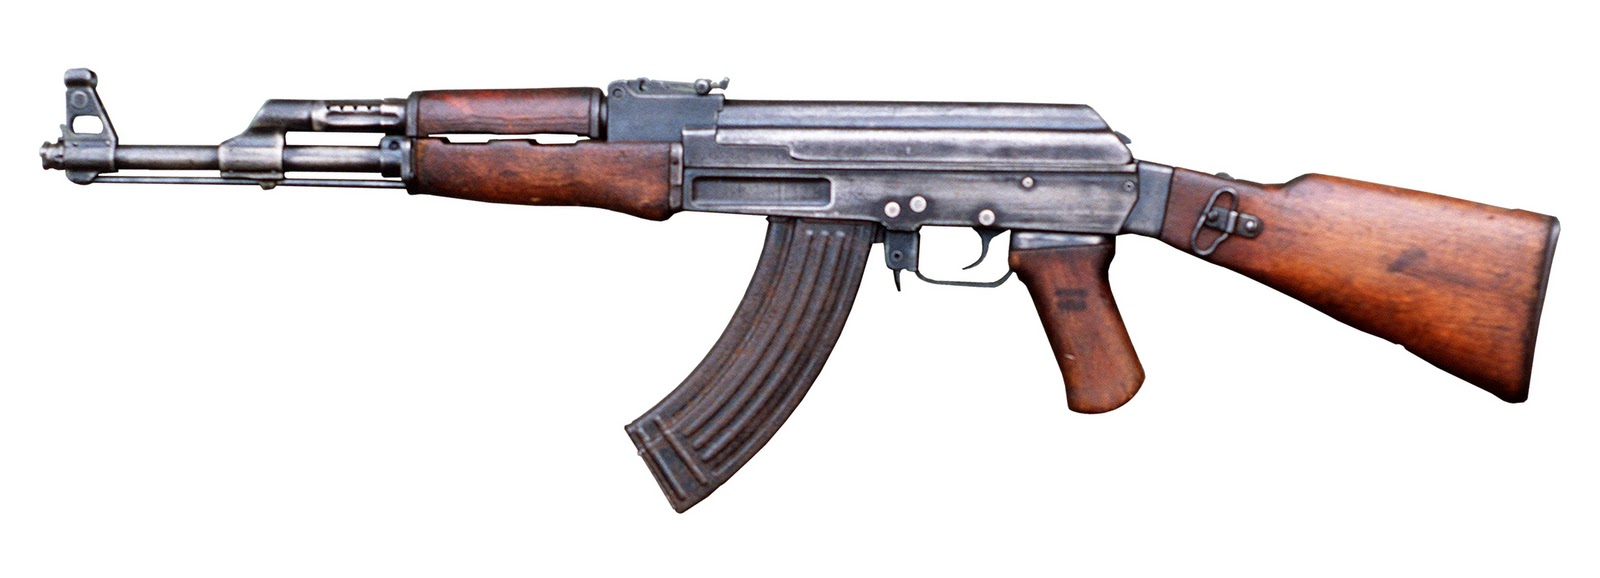 Norinco Ak-47 Type 56s-1 Underfolder Pre-89 ban For Sale at ...